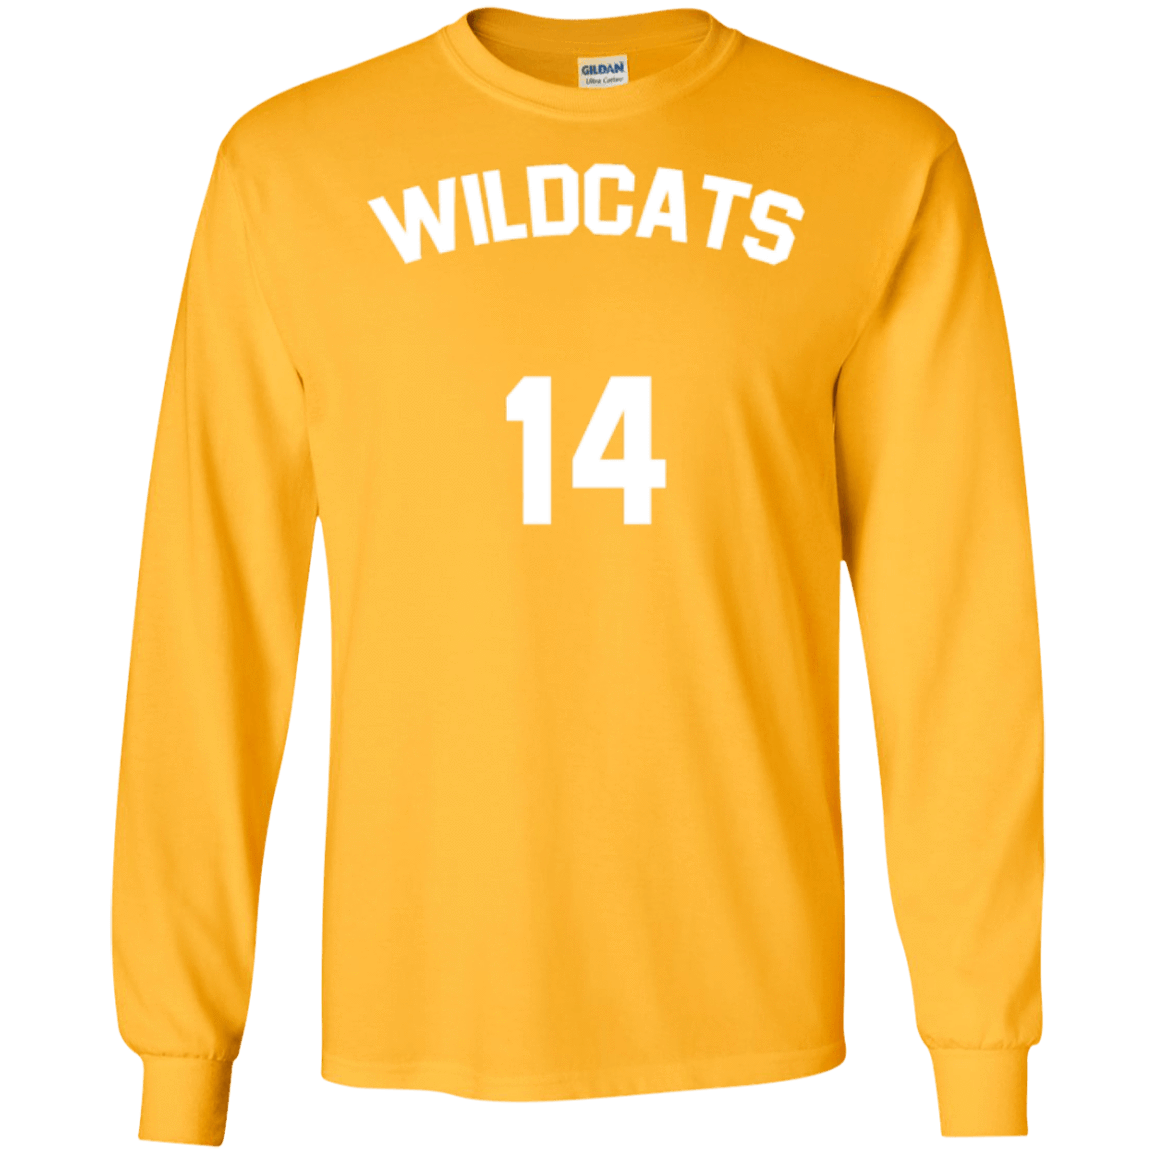 afb601088d0 Troy Bolton Wildcats Long Sleeve Shirt 14 - Jersey Champs